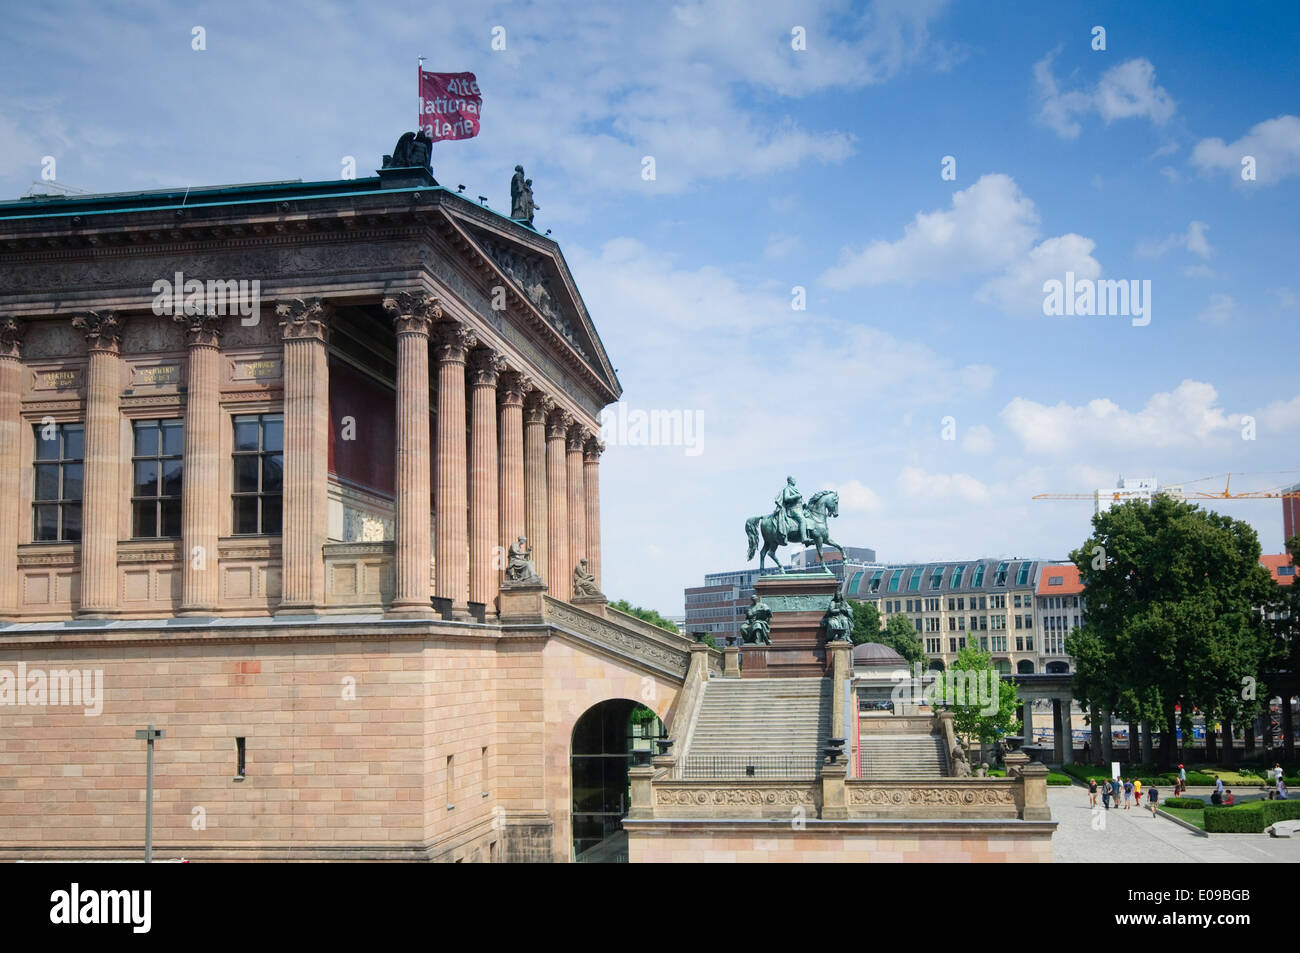 germany berlin mitte district museumsinsel island alte stock photo 69048123 alamy. Black Bedroom Furniture Sets. Home Design Ideas